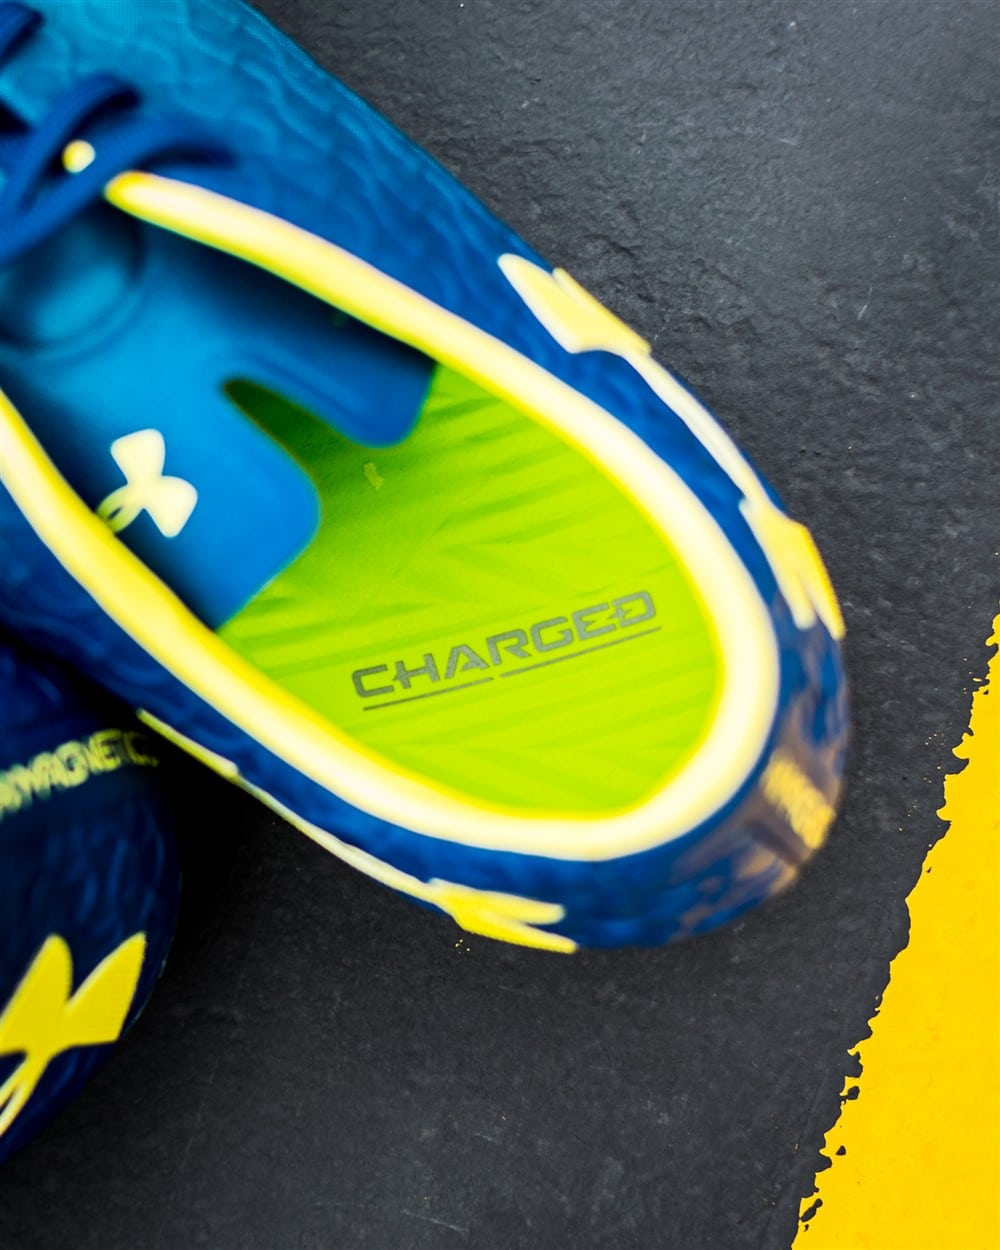 Under Armour Magnetico Pro Review